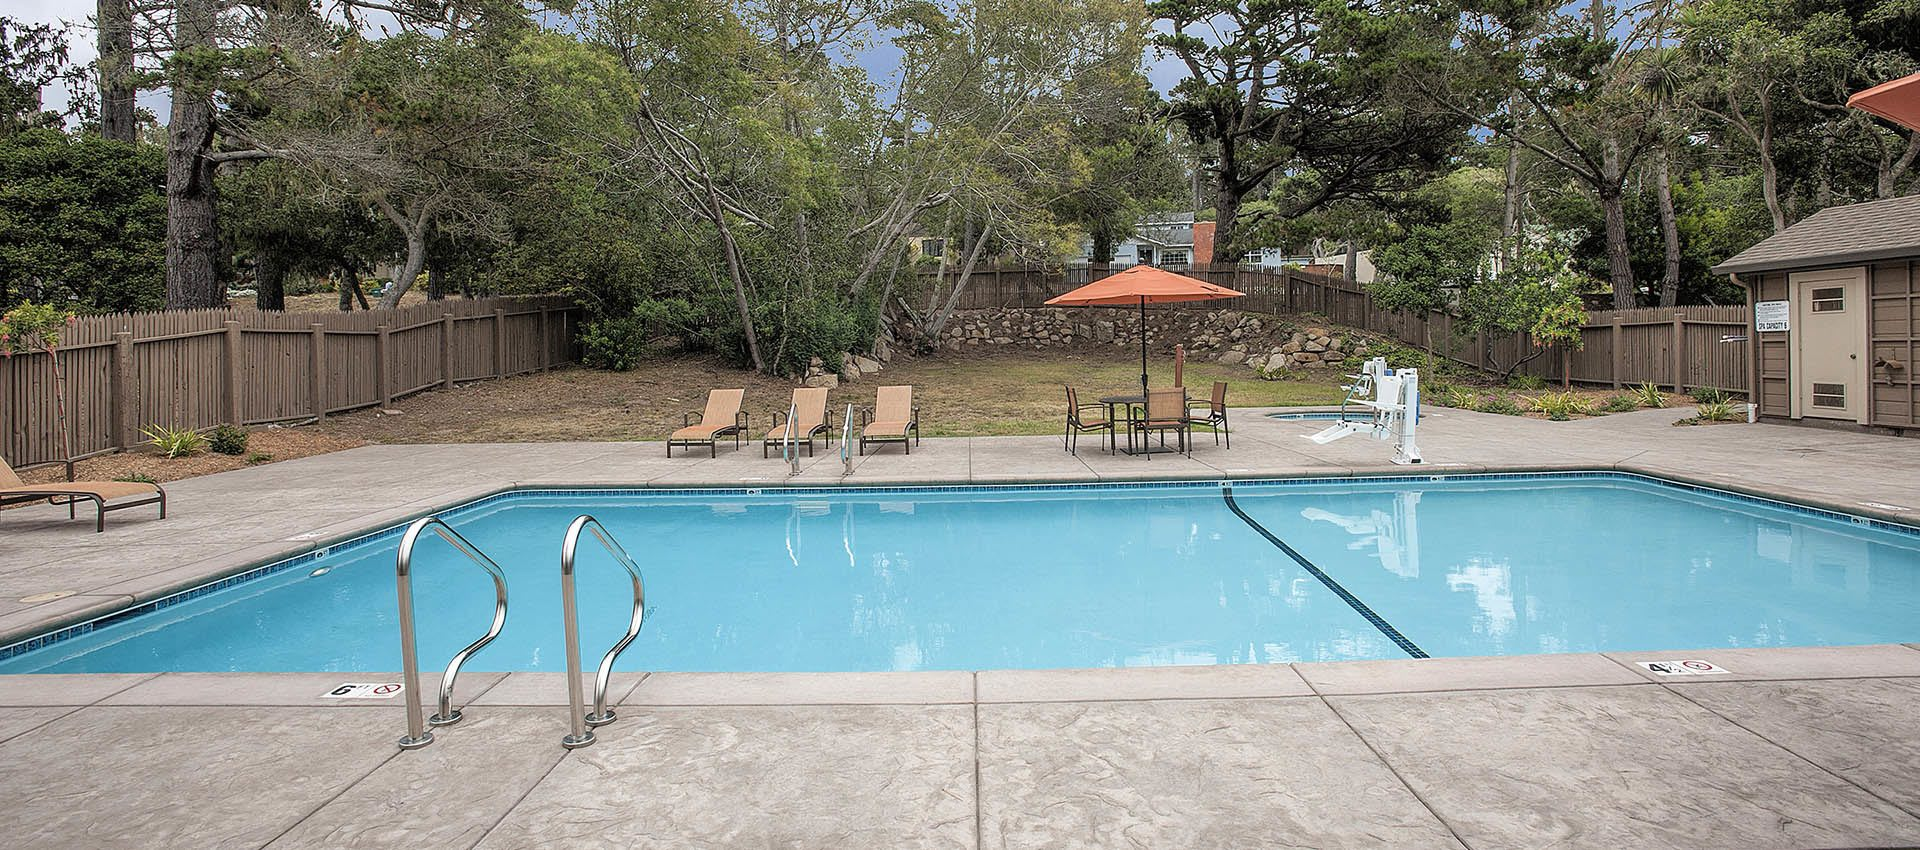 Large Clean Pool at Seventeen Mile Drive Village Apartment Homes in Pacific Grove